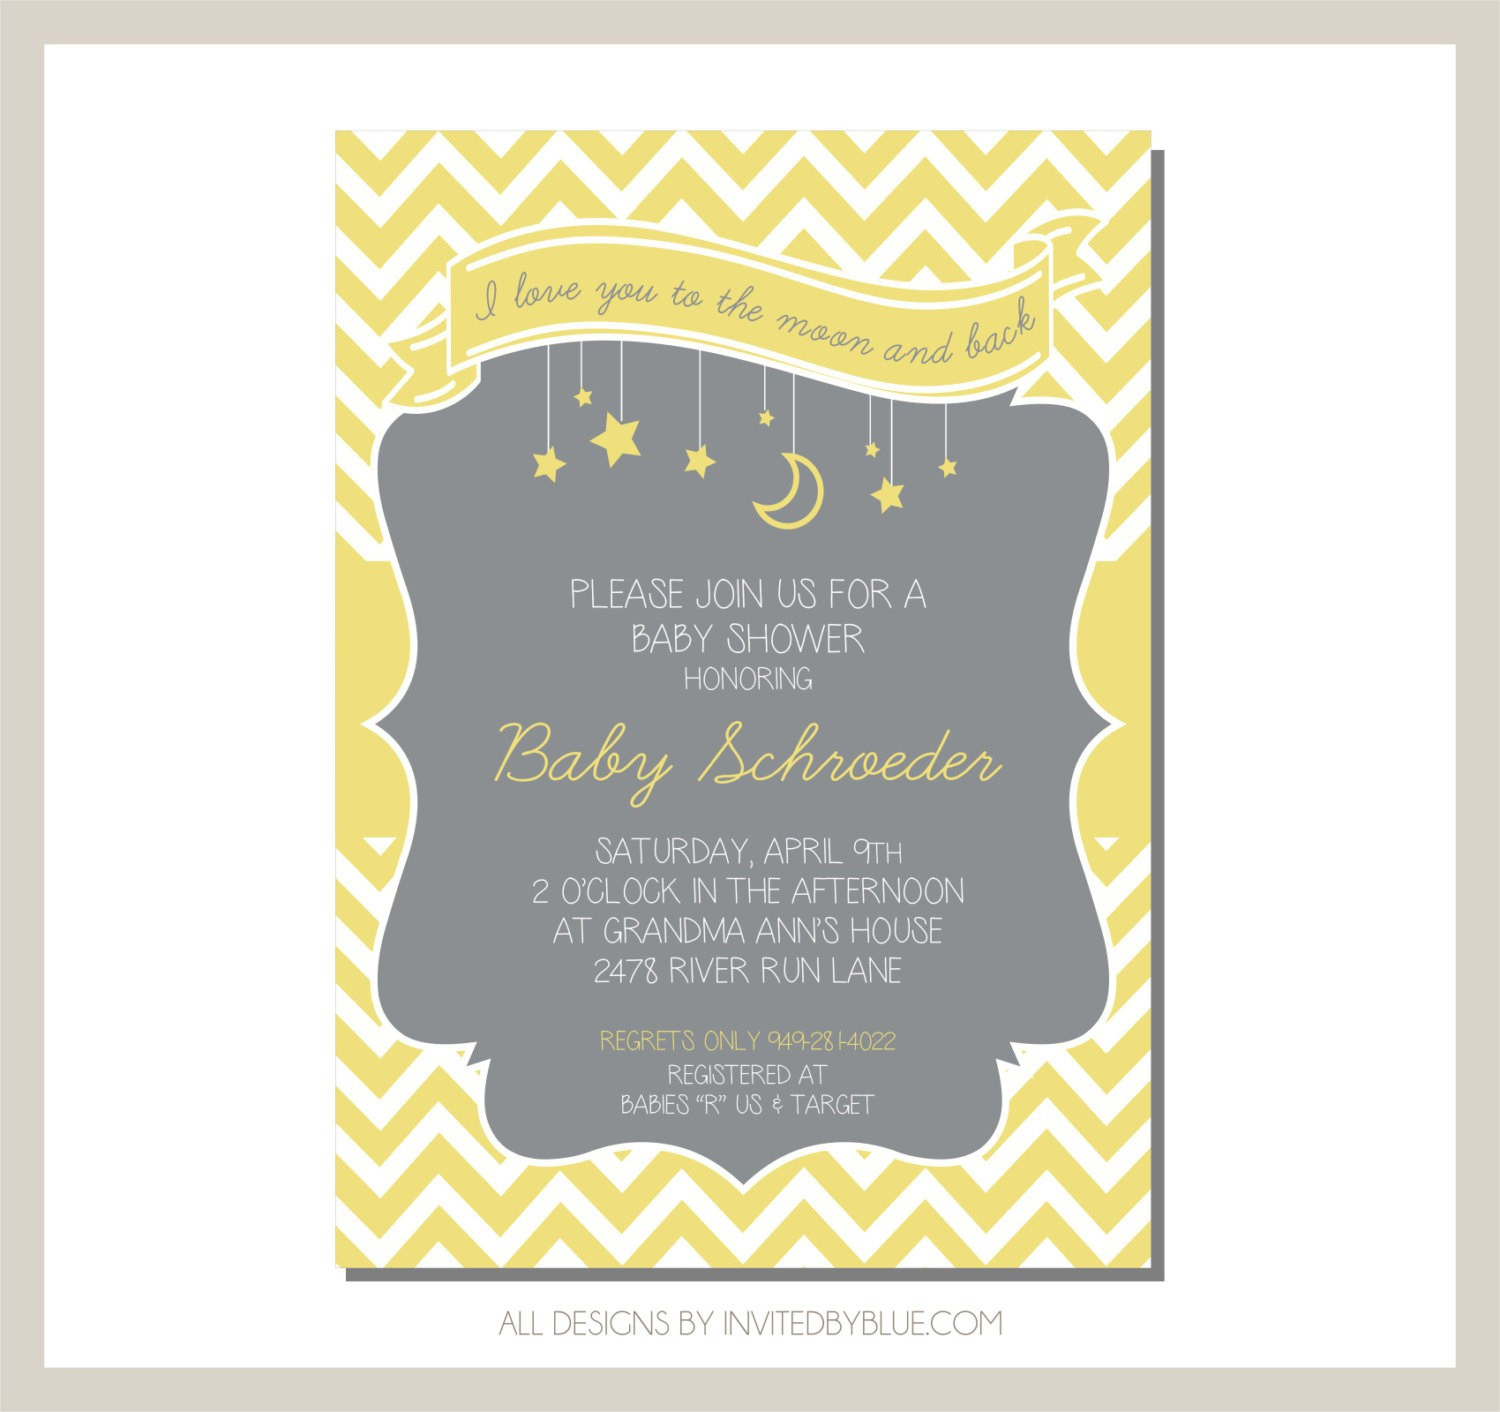 Full Size of Baby Shower:baby Shower Halls With Baby Shower At The Park Plus Recuerdos De Baby Shower Together With Fun Baby Shower Games As Well As Baby Shower Hostess Gifts And Baby Shower Verses Baby Shower Invitation Wording Text Baby Shower Invitations Unique Baby 2 Shower Invitation Wording